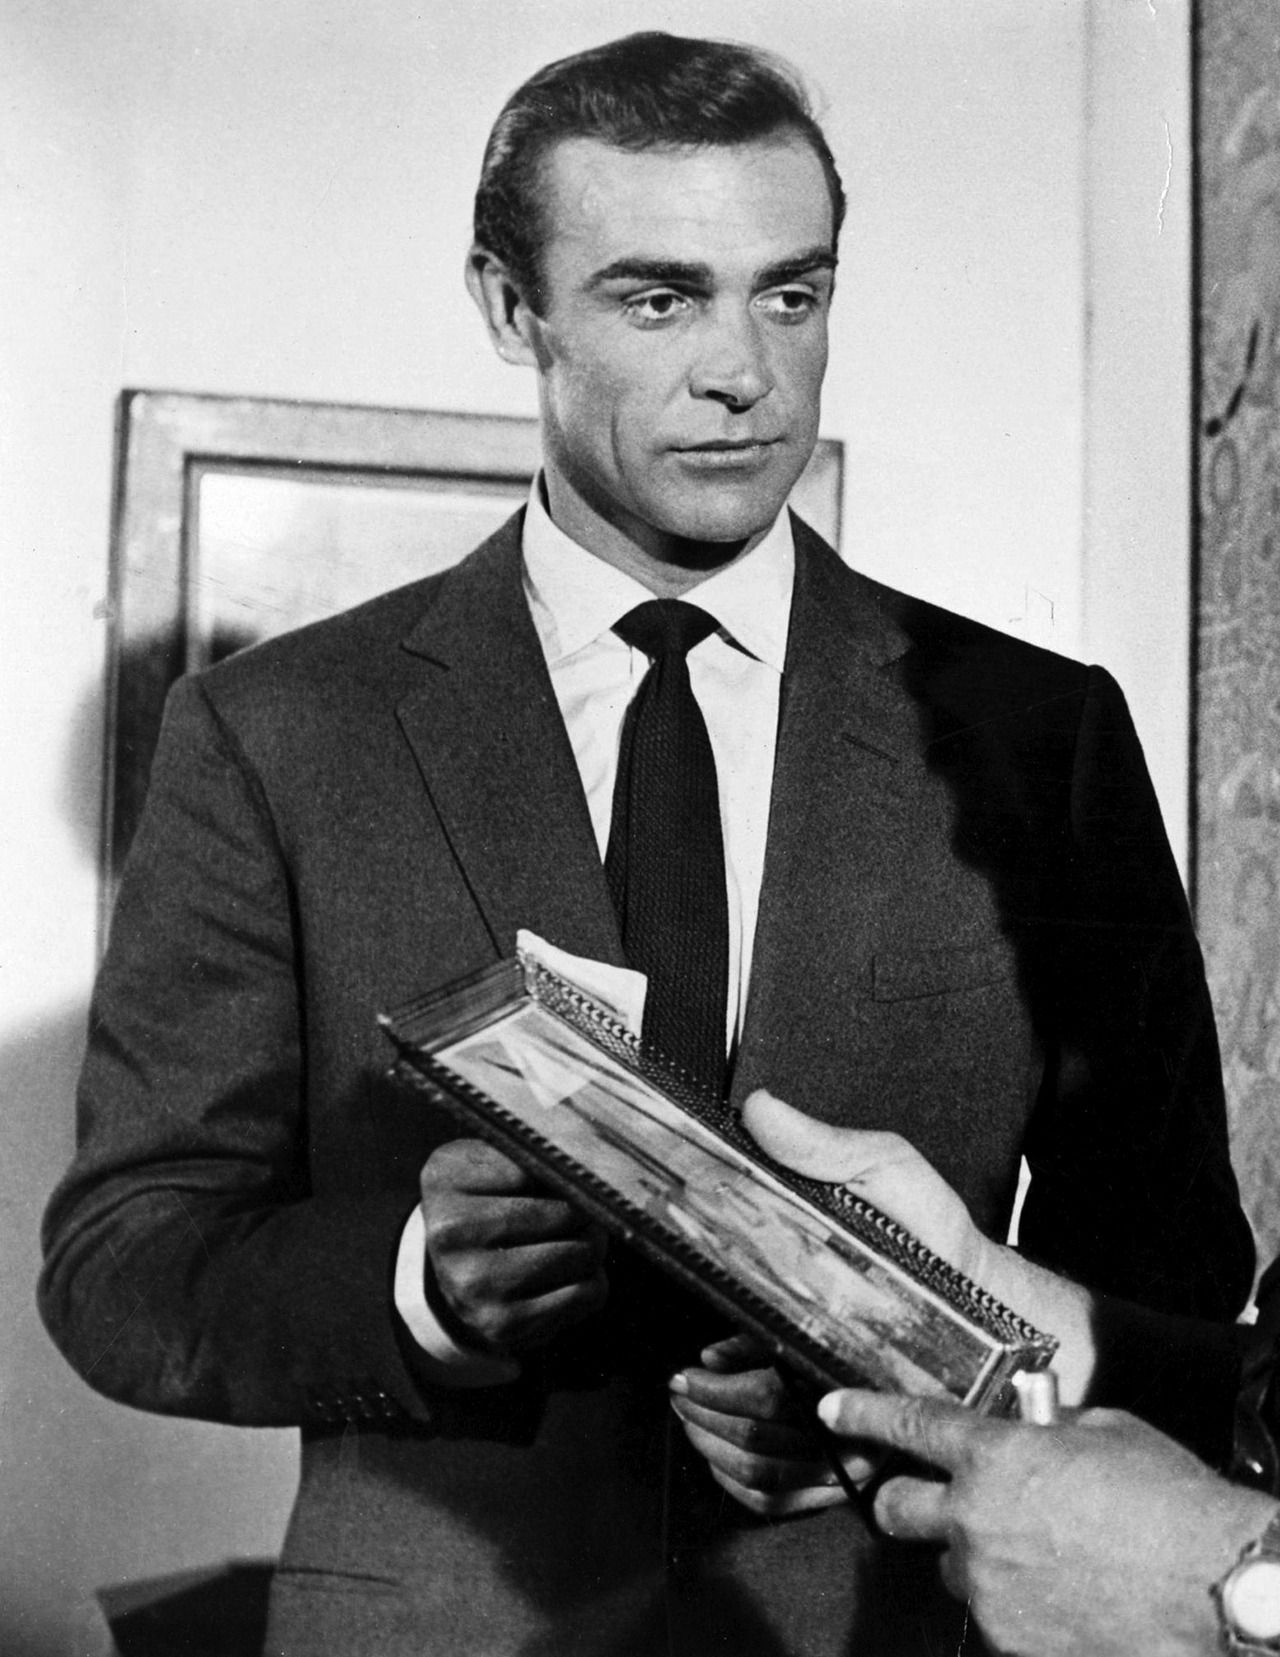 Flannel and grenadine season is coming sean connery 1962 james bond suit